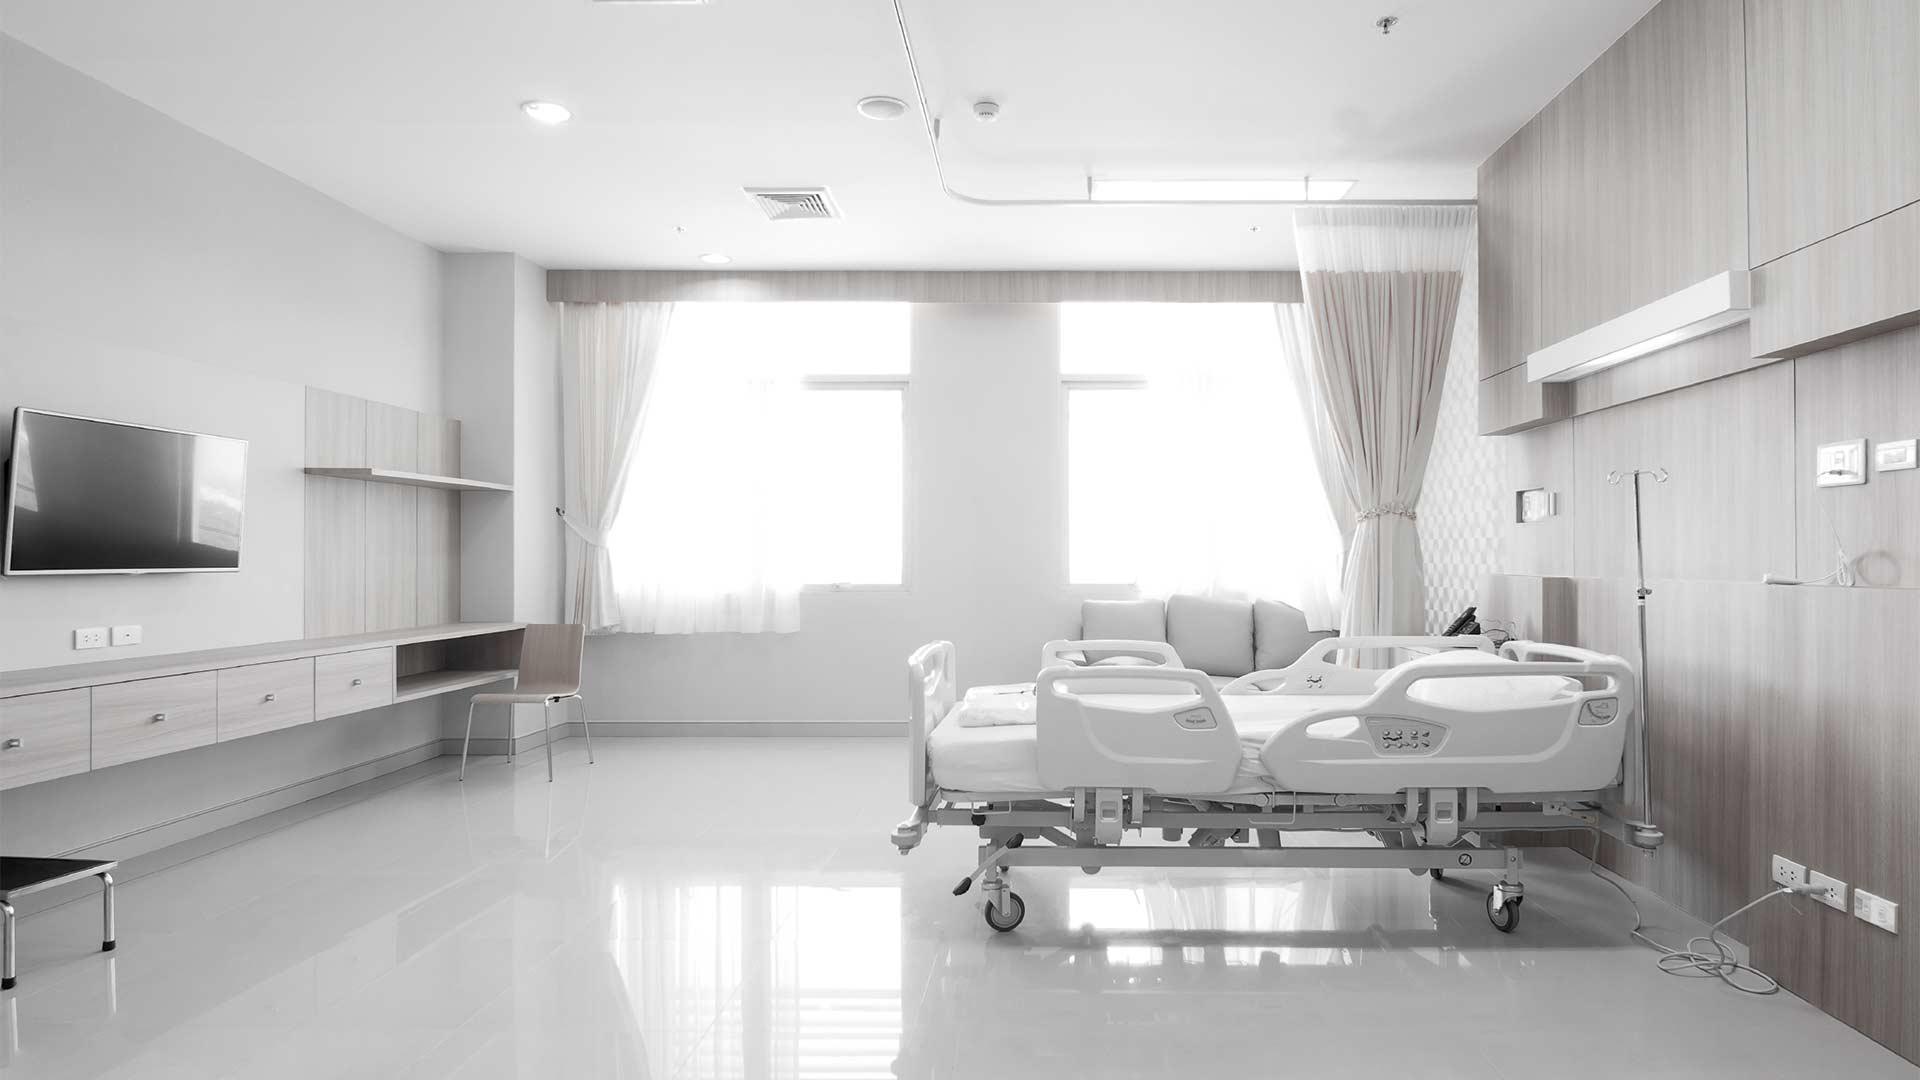 Skygroup_Home-Hospitals+Medical